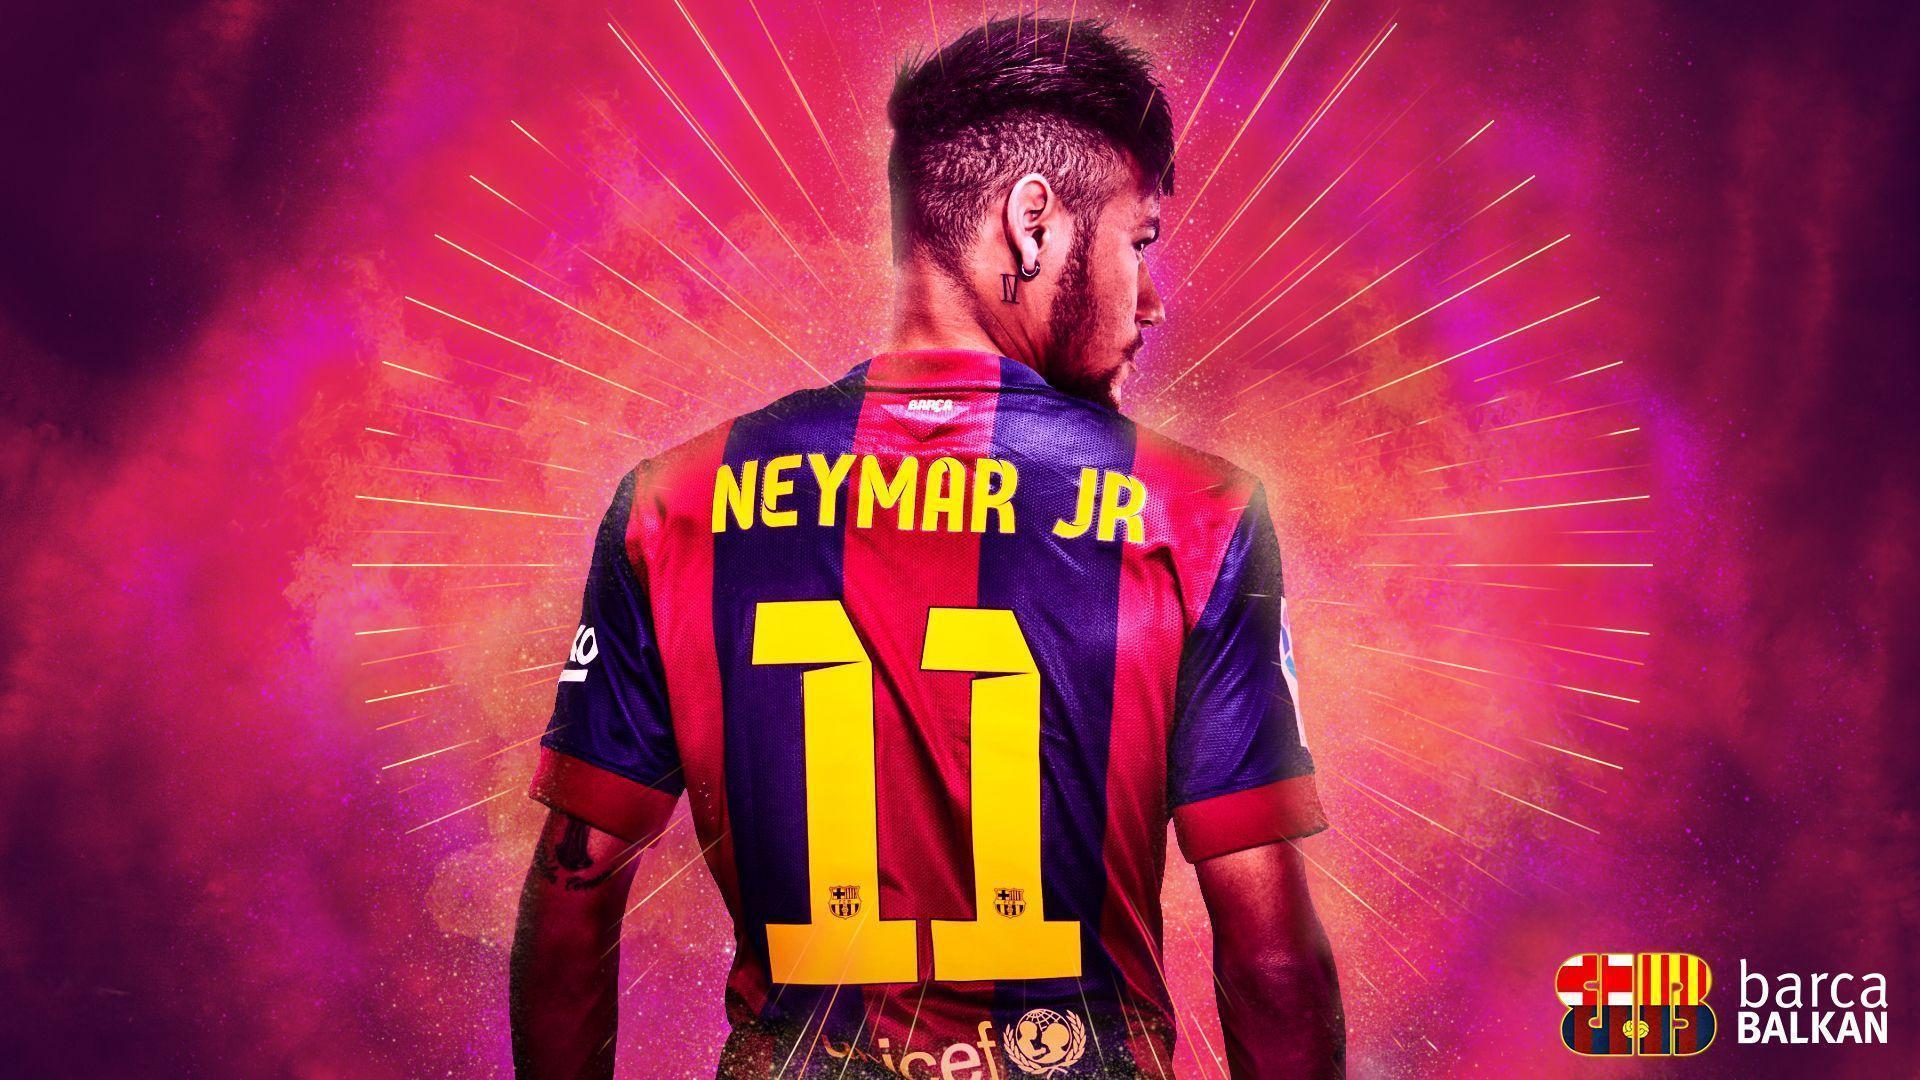 1000+ images about Neymar Jr Wallpaper on Pinterest | Photos ...